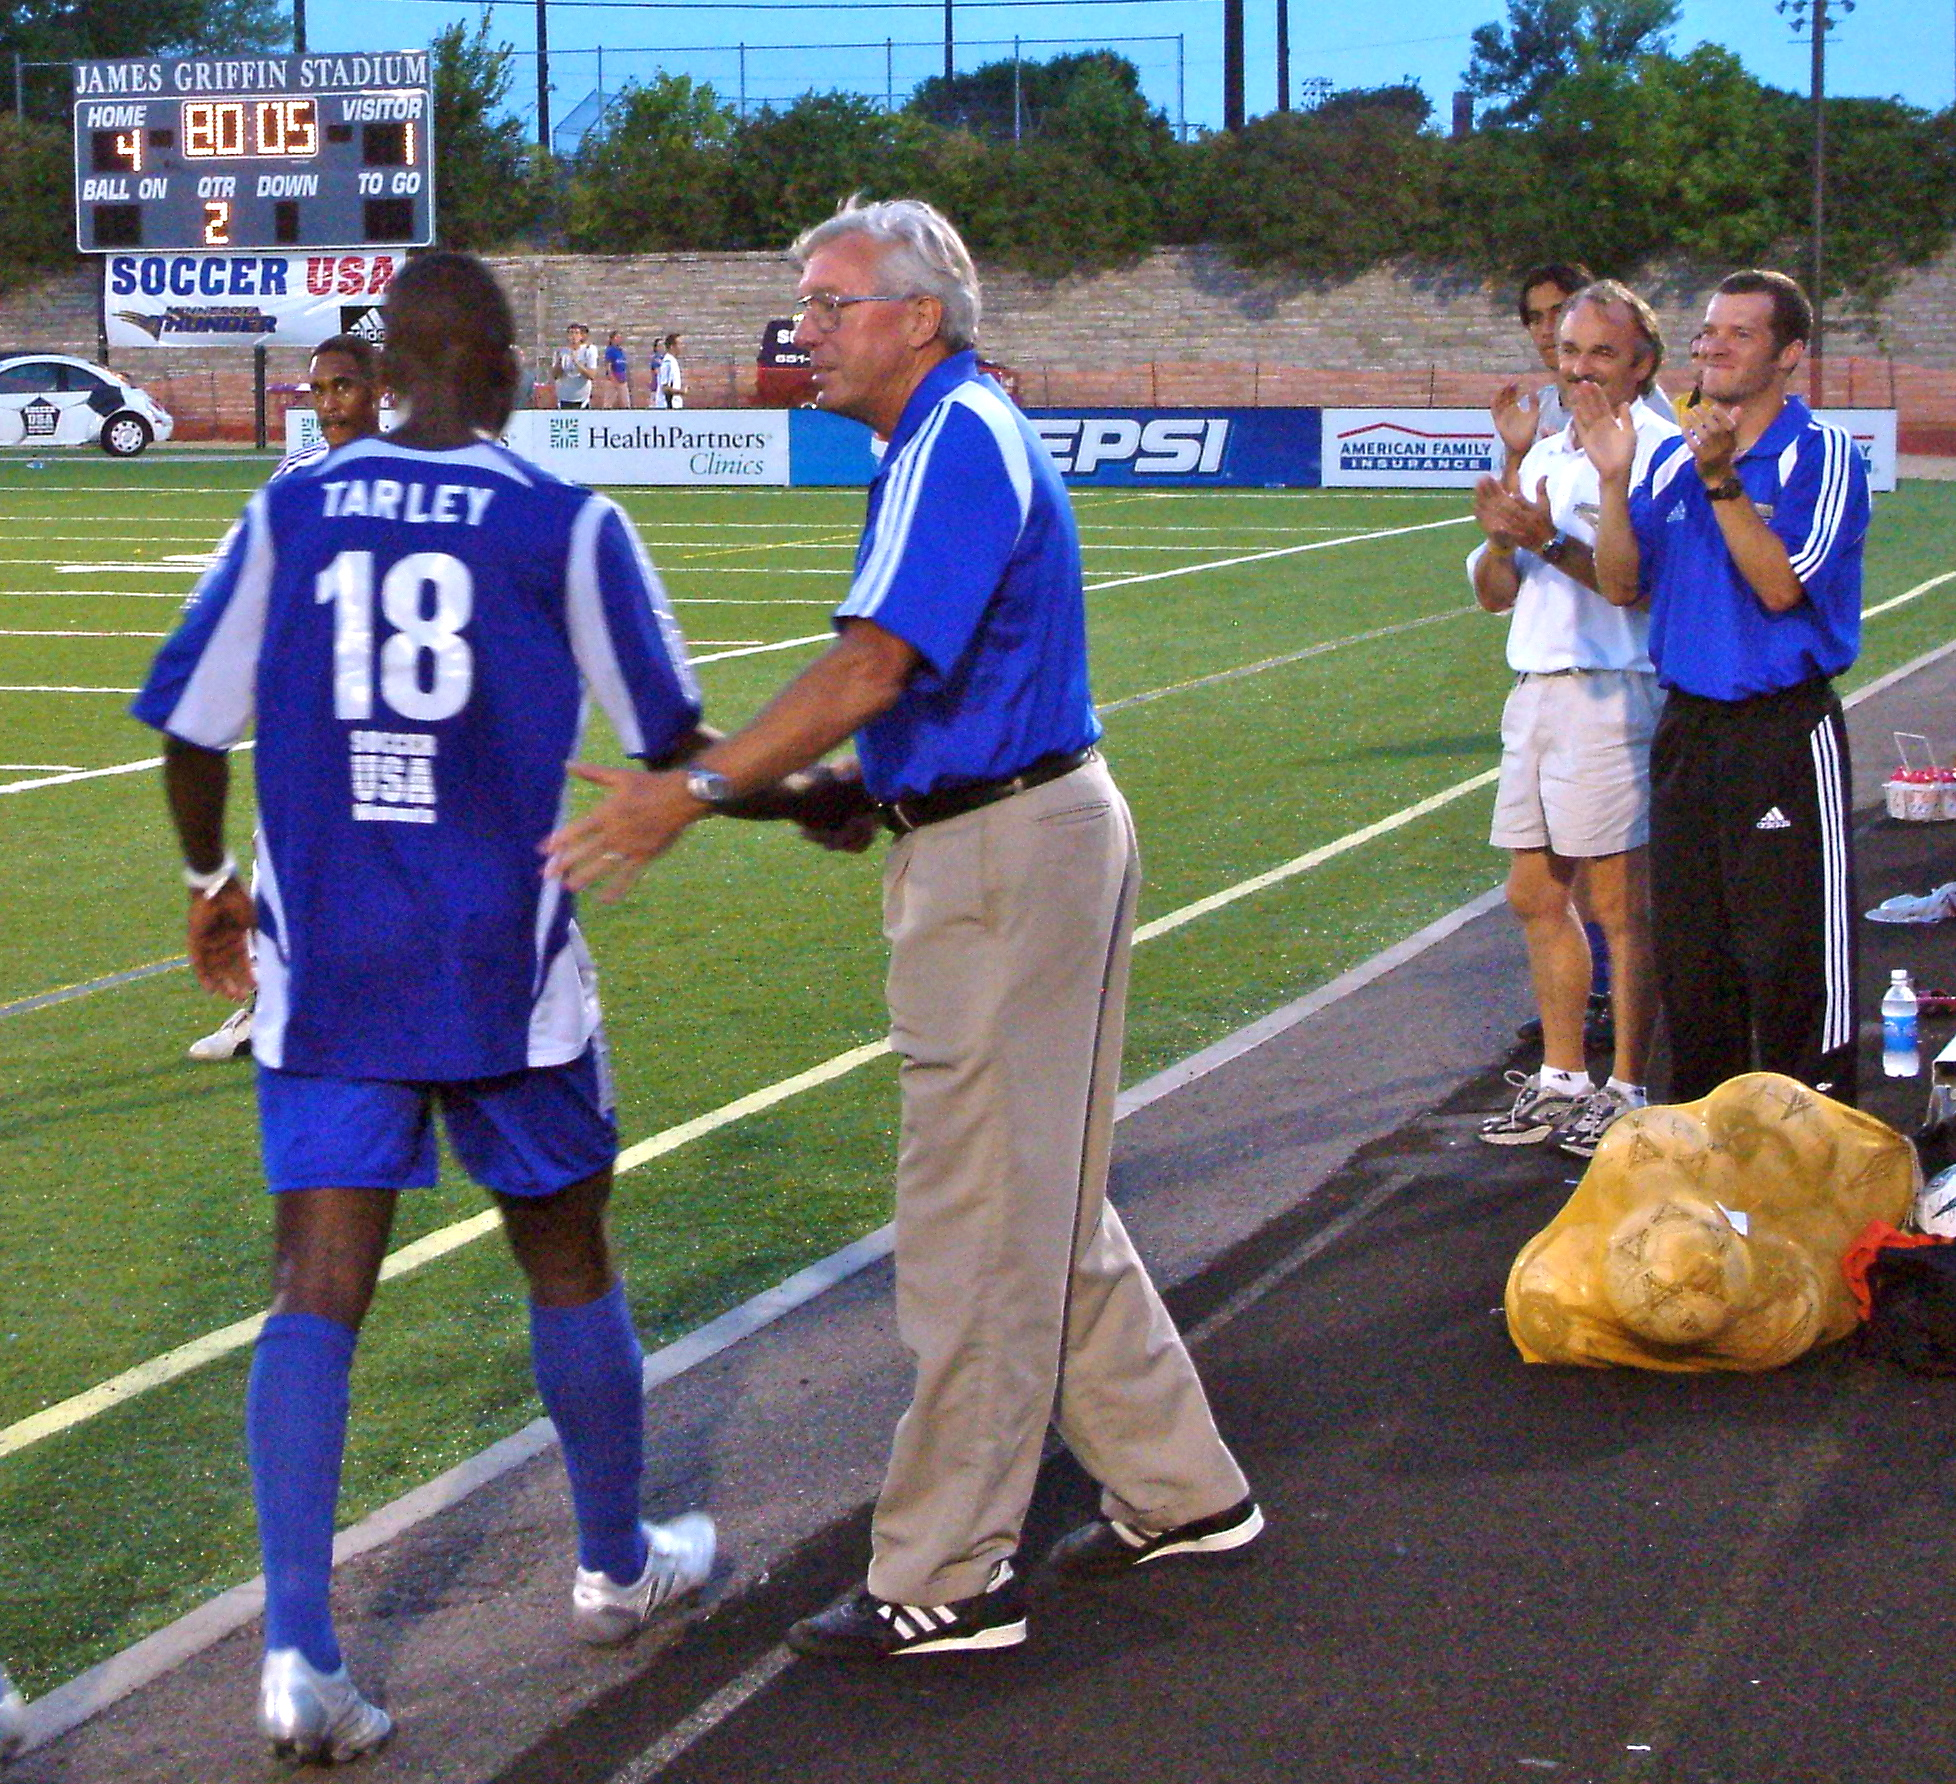 Thunder head coach Buzz Lagos congratulates forward Melvin Tarley for his four-goal performance against the Colorado Rapids in the 2005 U.S. Open Cup Round of 16.